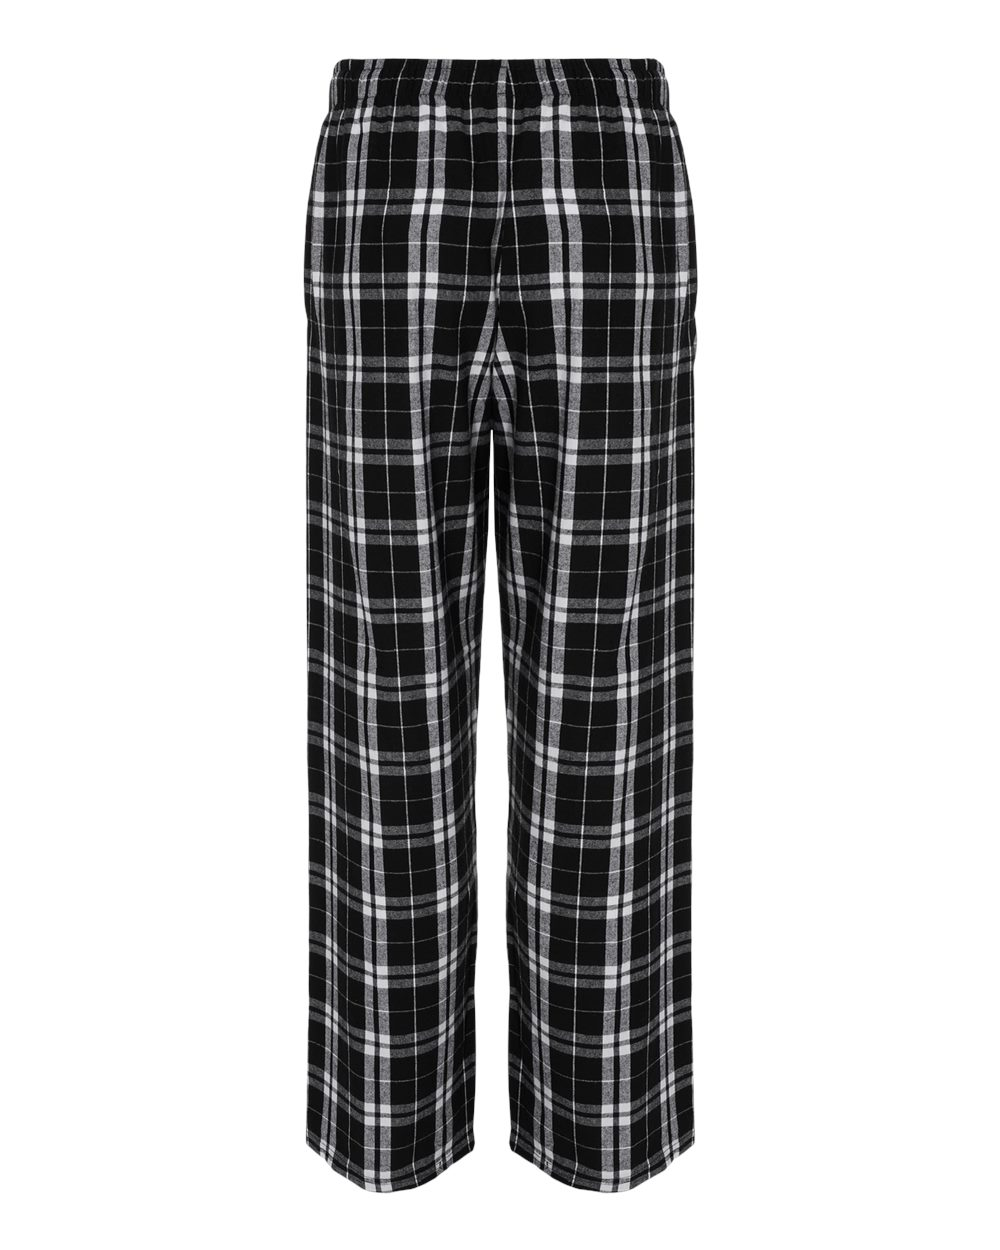 Boxercraft-Unisex-Flannel-Pants-With-Pockets-Pajama-Pants-F20-up-to-2XL thumbnail 10